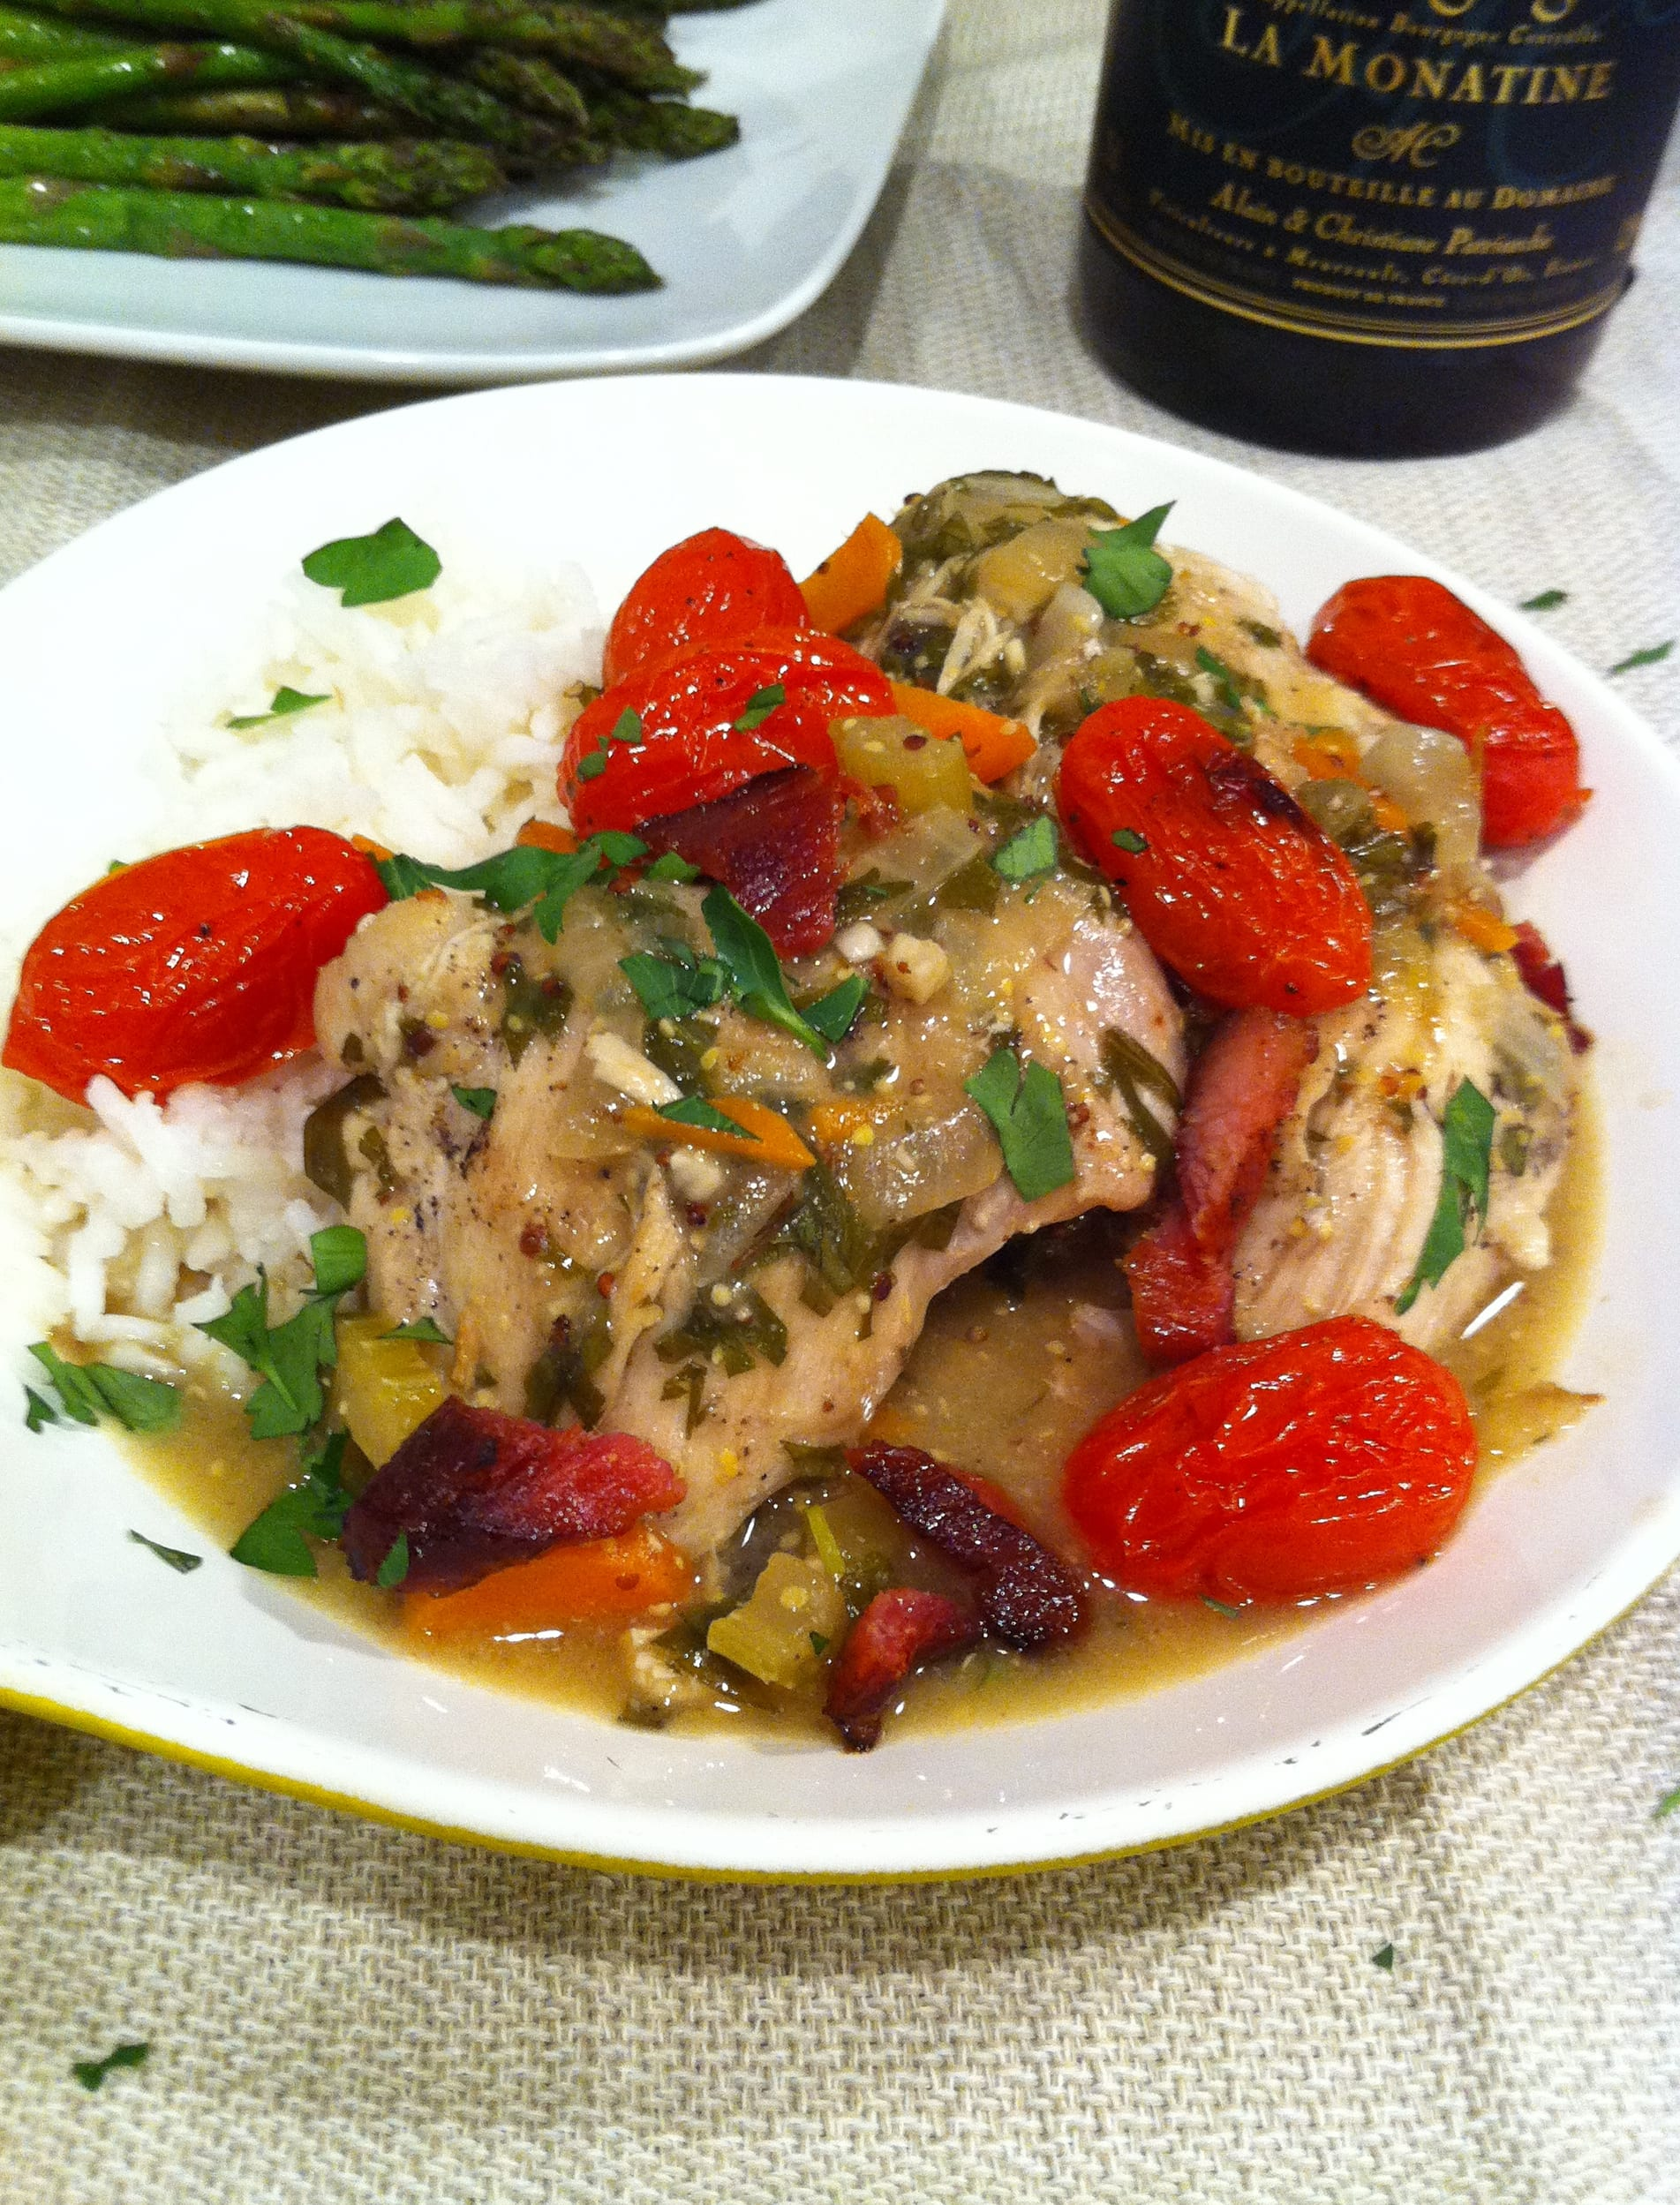 Chicken in wine sauce